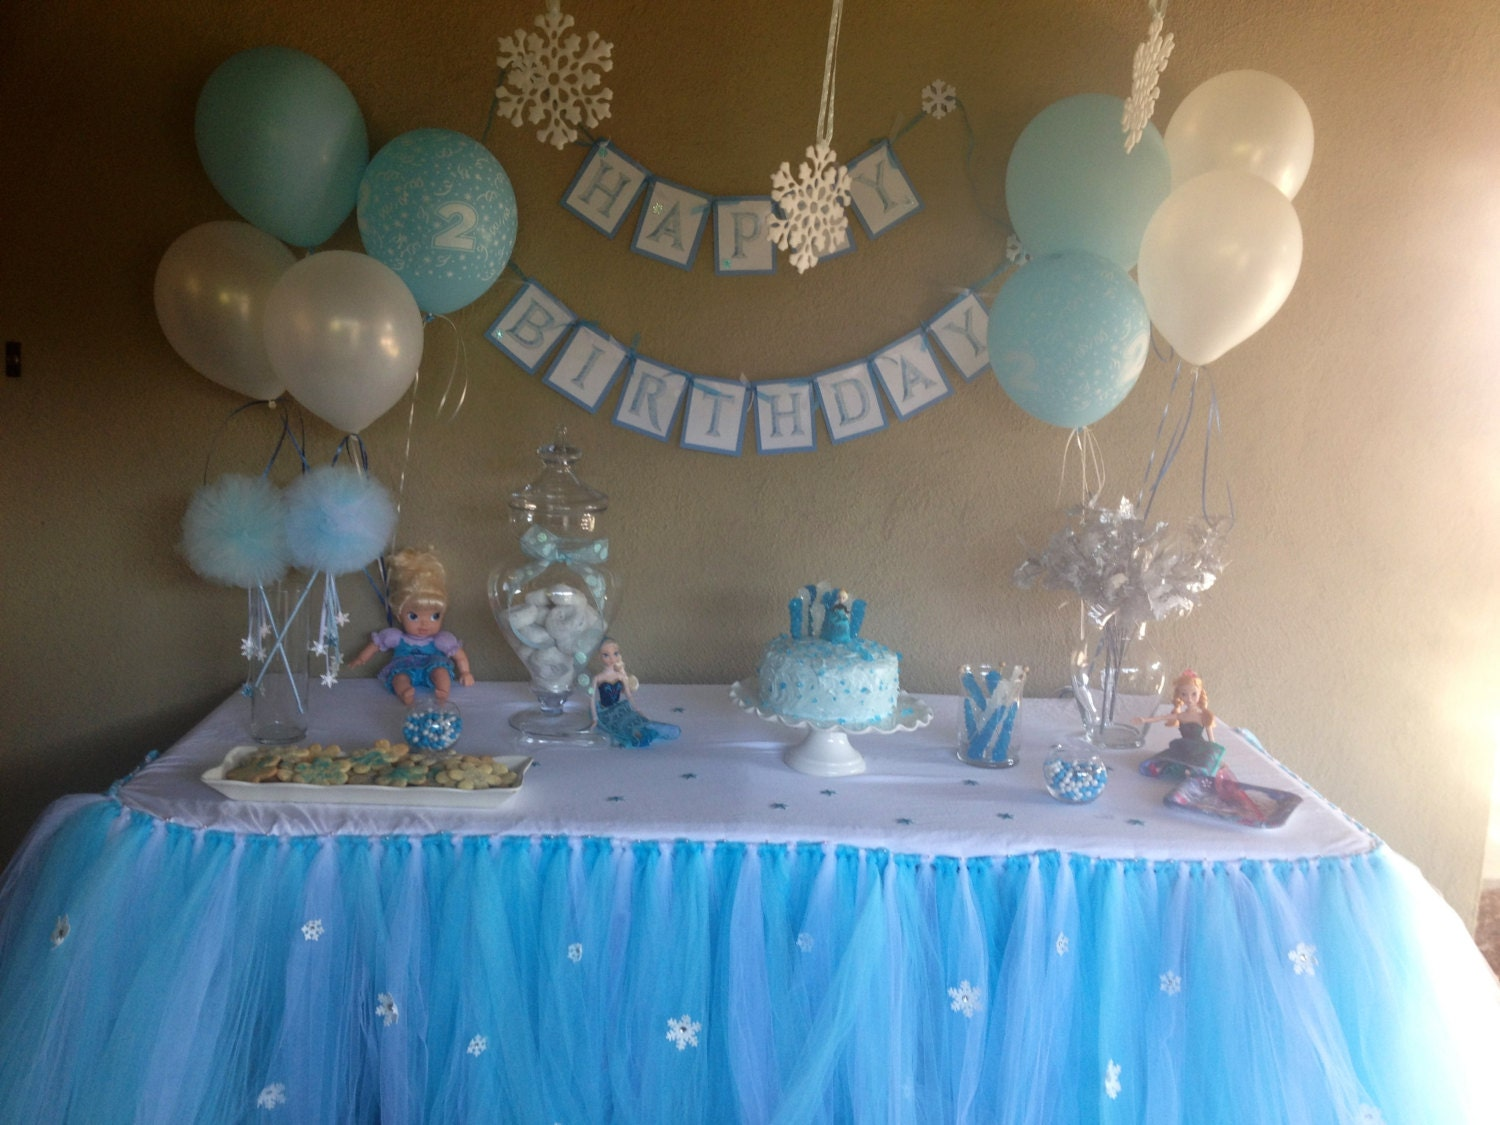 Buffet table skirting - Frozen Inspired Tutu Table Skirt Frozen Party Decoration Table Skirt Tutu Frozen Winter Wonderland Party